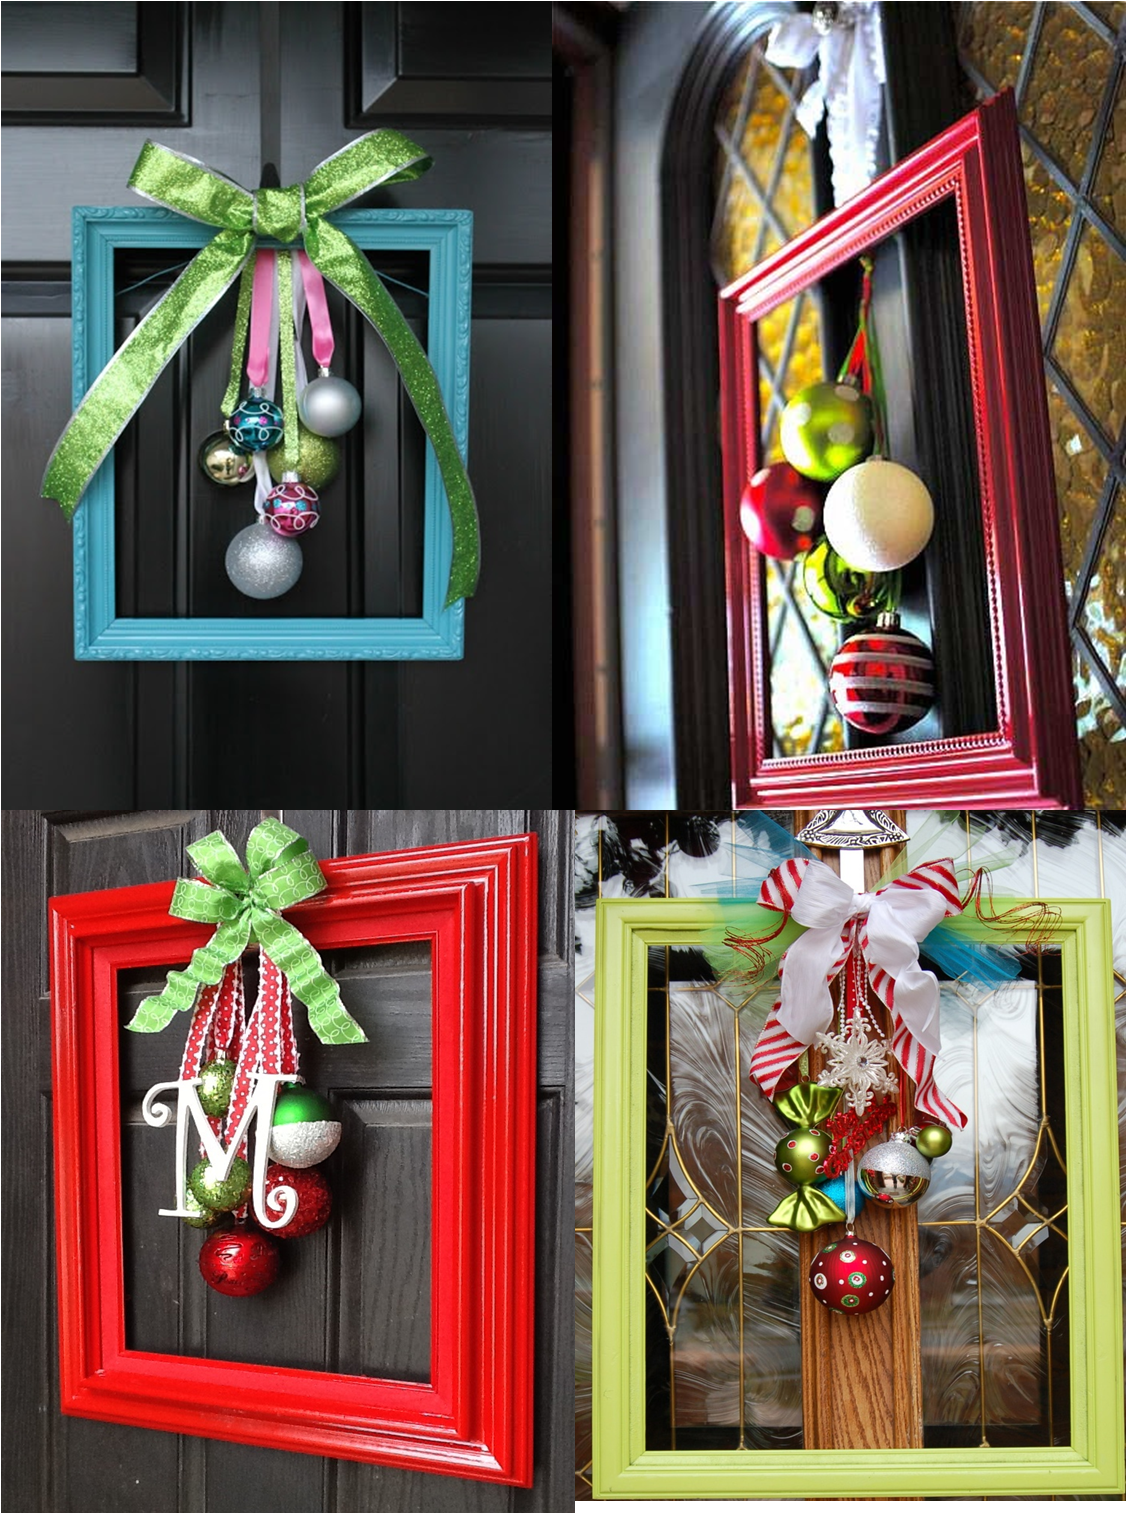 Elegant and unusual door decorations made from